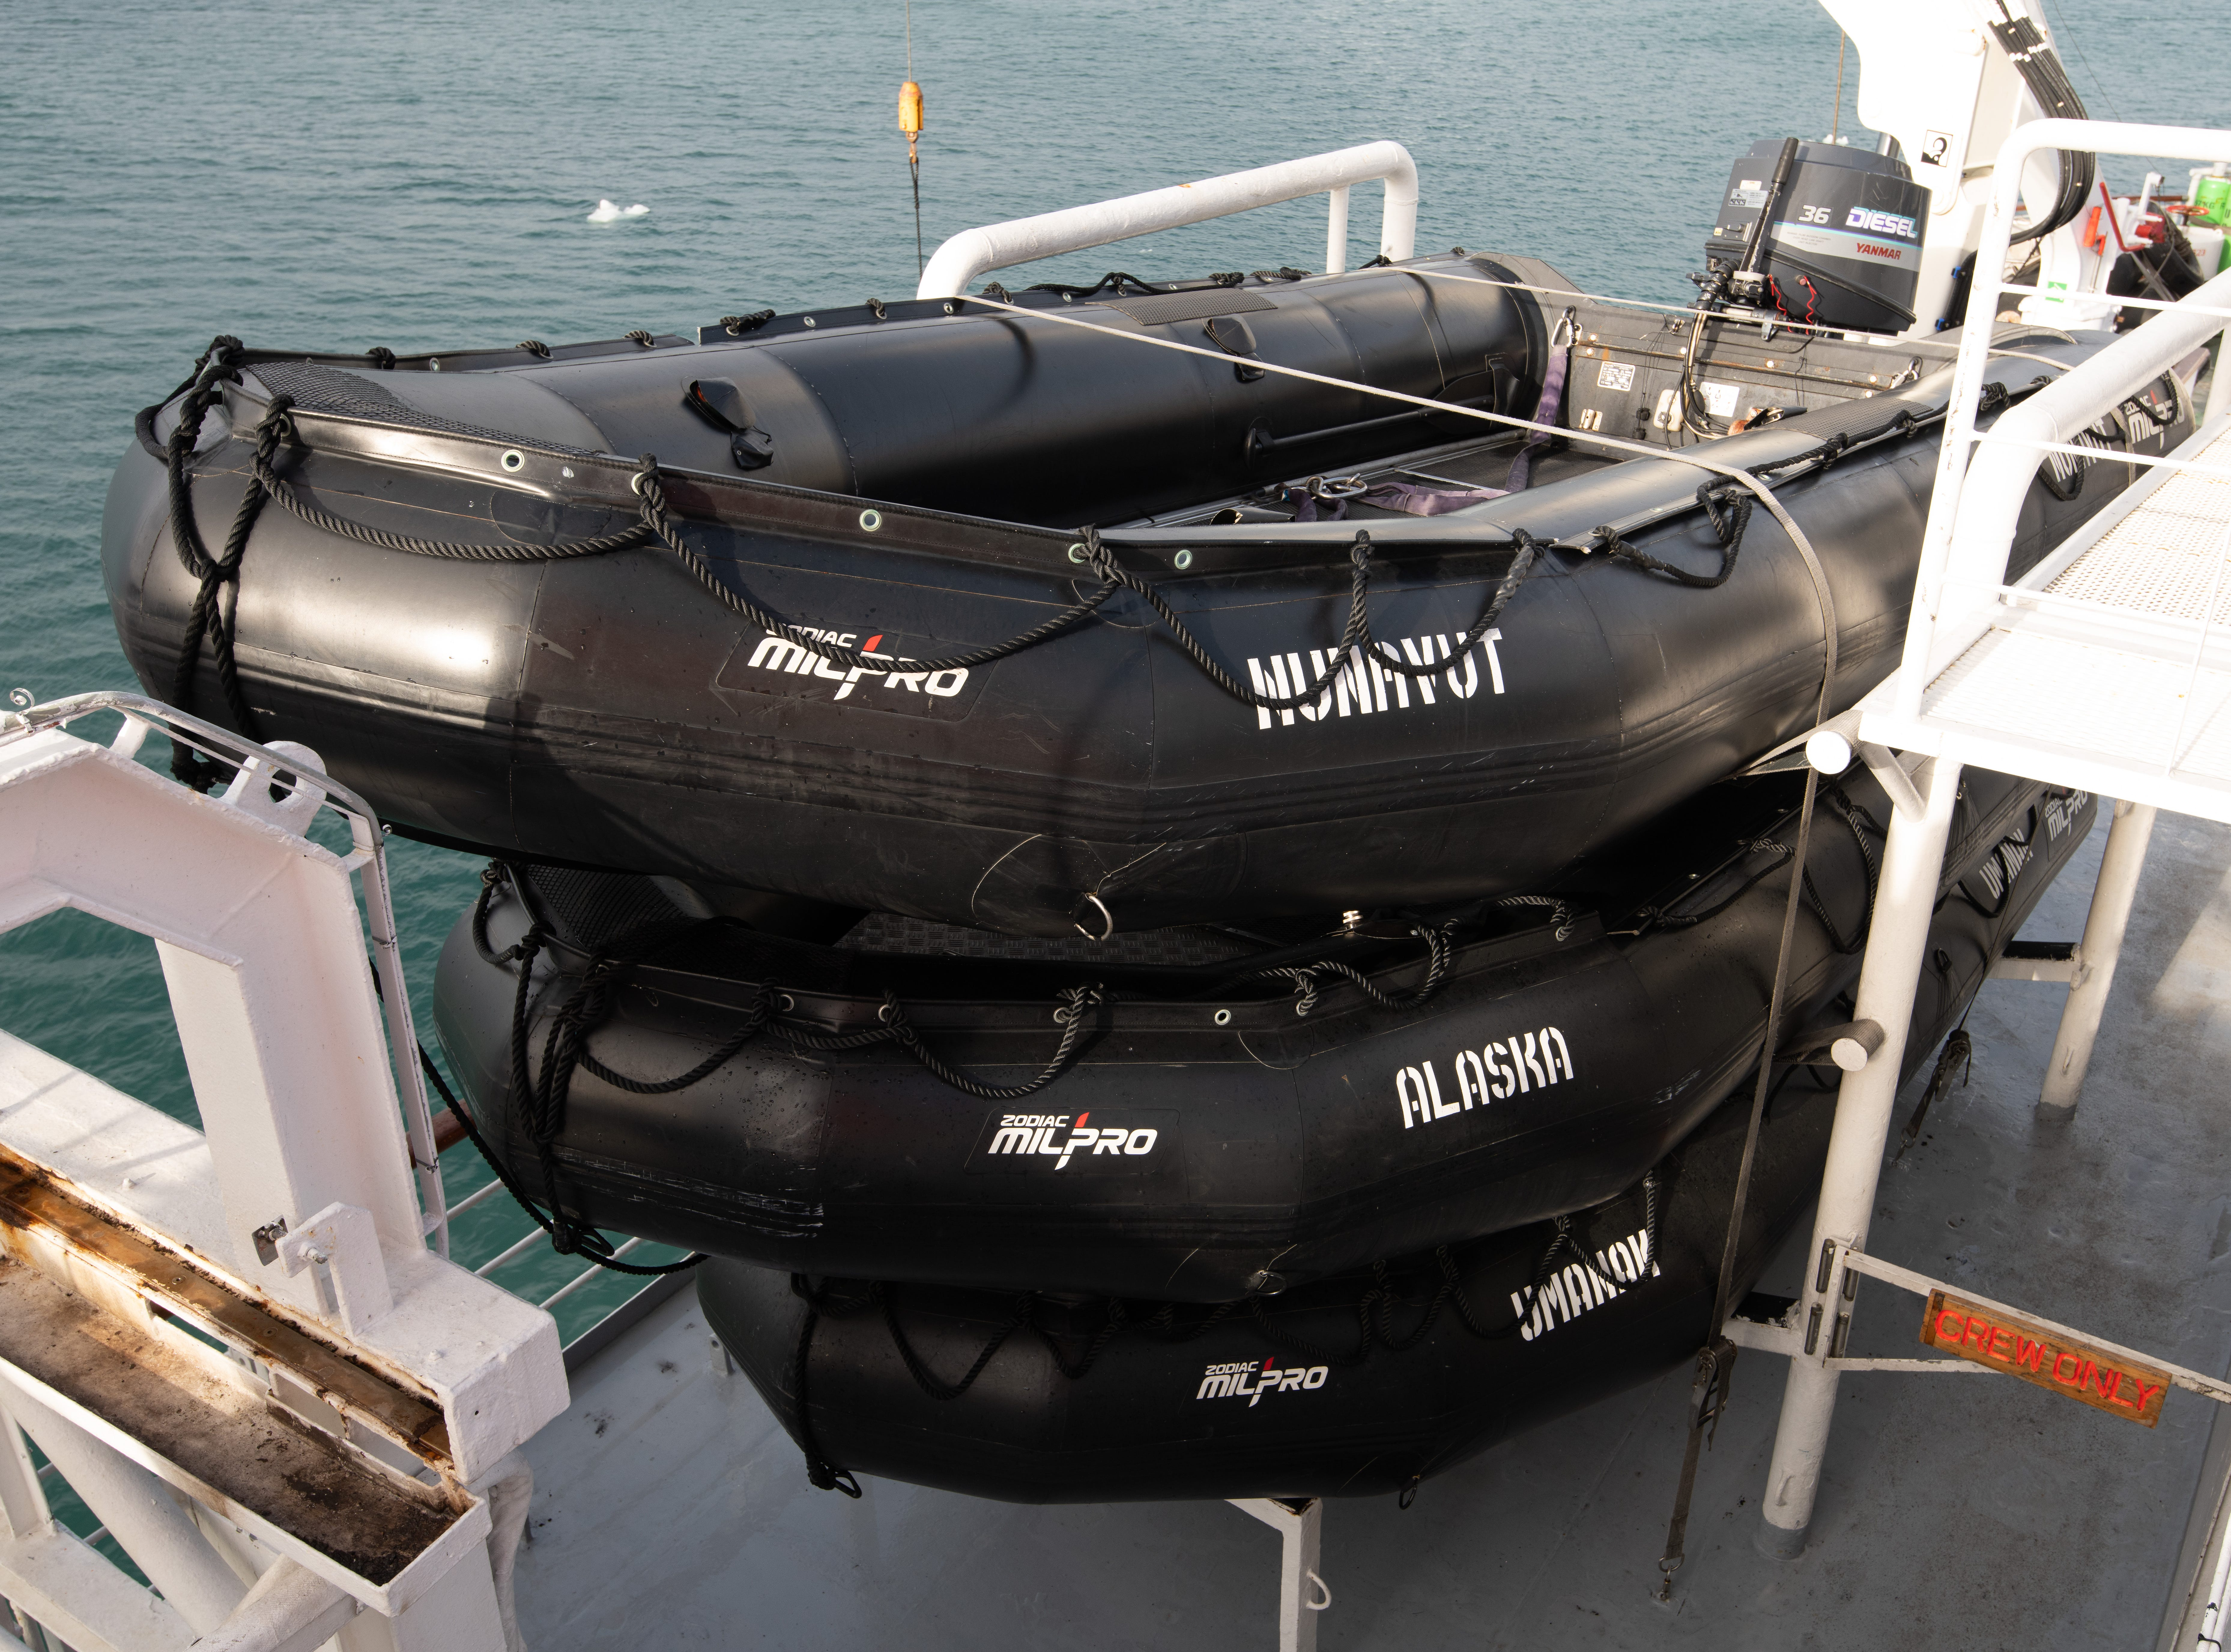 Bremen carries a dozen Zodiac boats that are used for exploring in remote locations such as the Arctic and Antarctica.